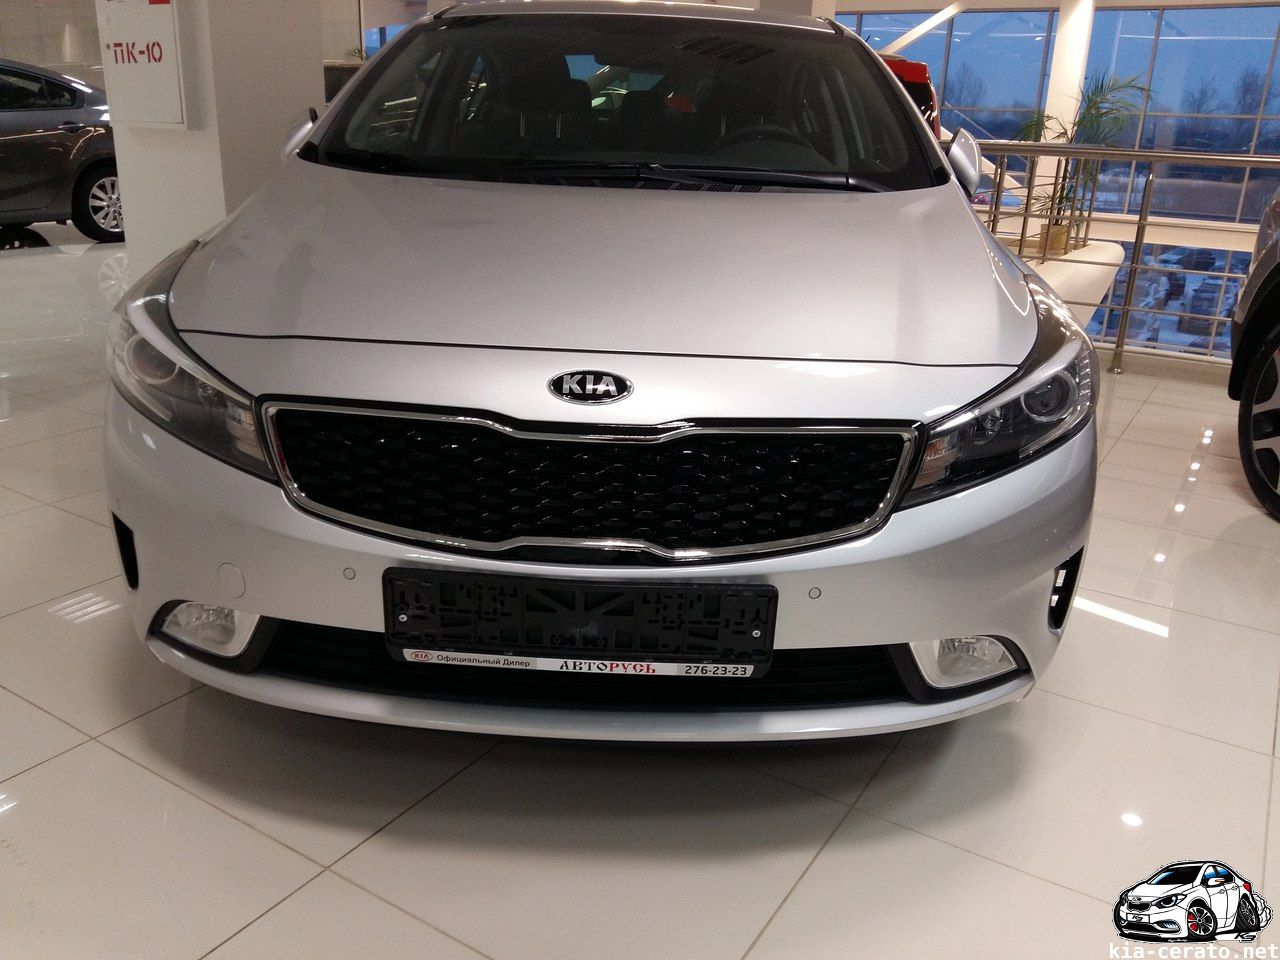 KIA Cerato 2017 рестайлинг серебро by Zeroing in KIA Cerato (k3) 2016 facelift